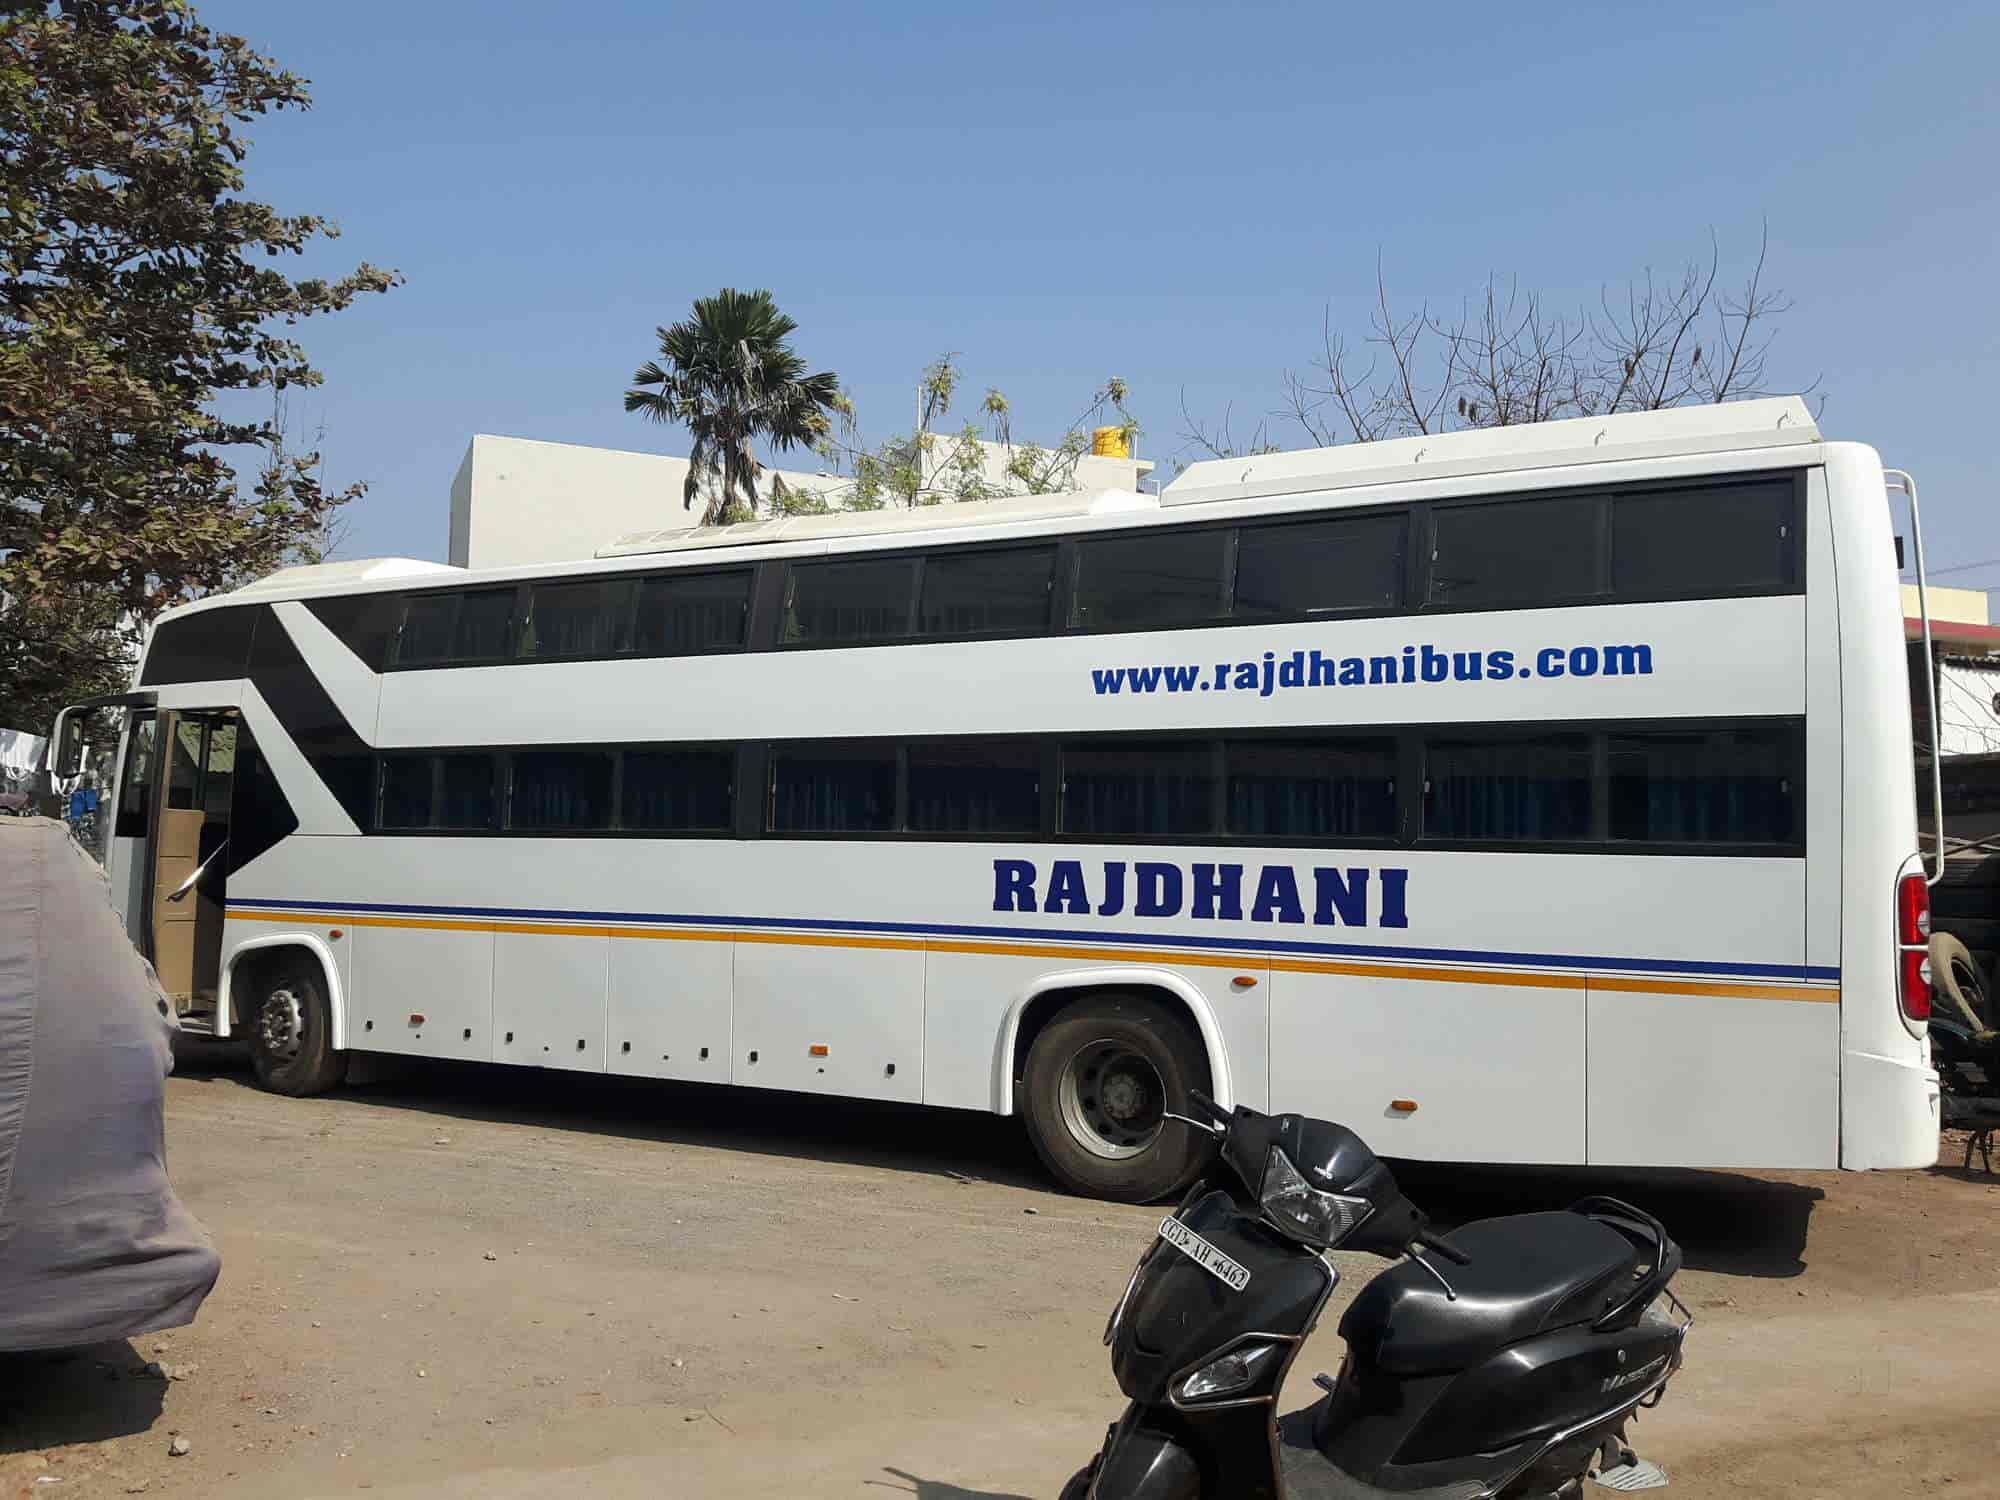 Rajdhani Tours And Travels Photos Shiv Talkies Chowk Bilaspur Chhattisgarh Pictures Images Gallery Justdial